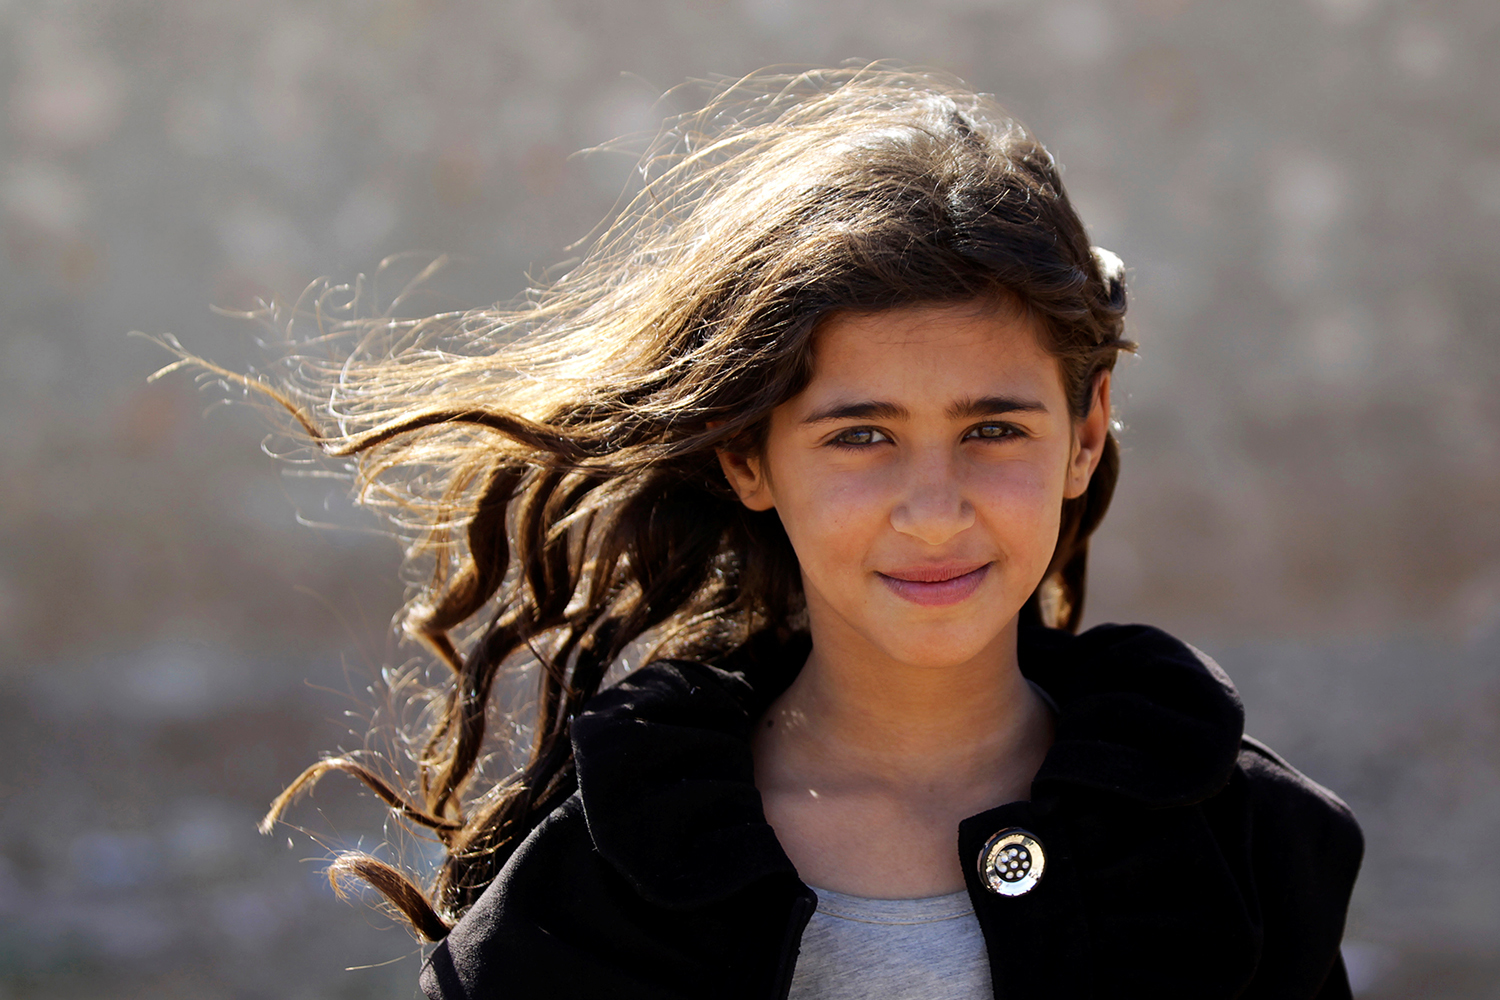 ALEPPO 2016-09-28 Doaa, 10, who fled with her parents from Islamic State-controlled areas, poses while she waits at a checkpoint controlled by rebel fighters in the northern Syrian rebel-held town of al-Rai, in Aleppo Governorate, Syria, September 28, 2016. REUTERS/Khalil Ashawi Photo: / REUTERS / TT / kod 72000